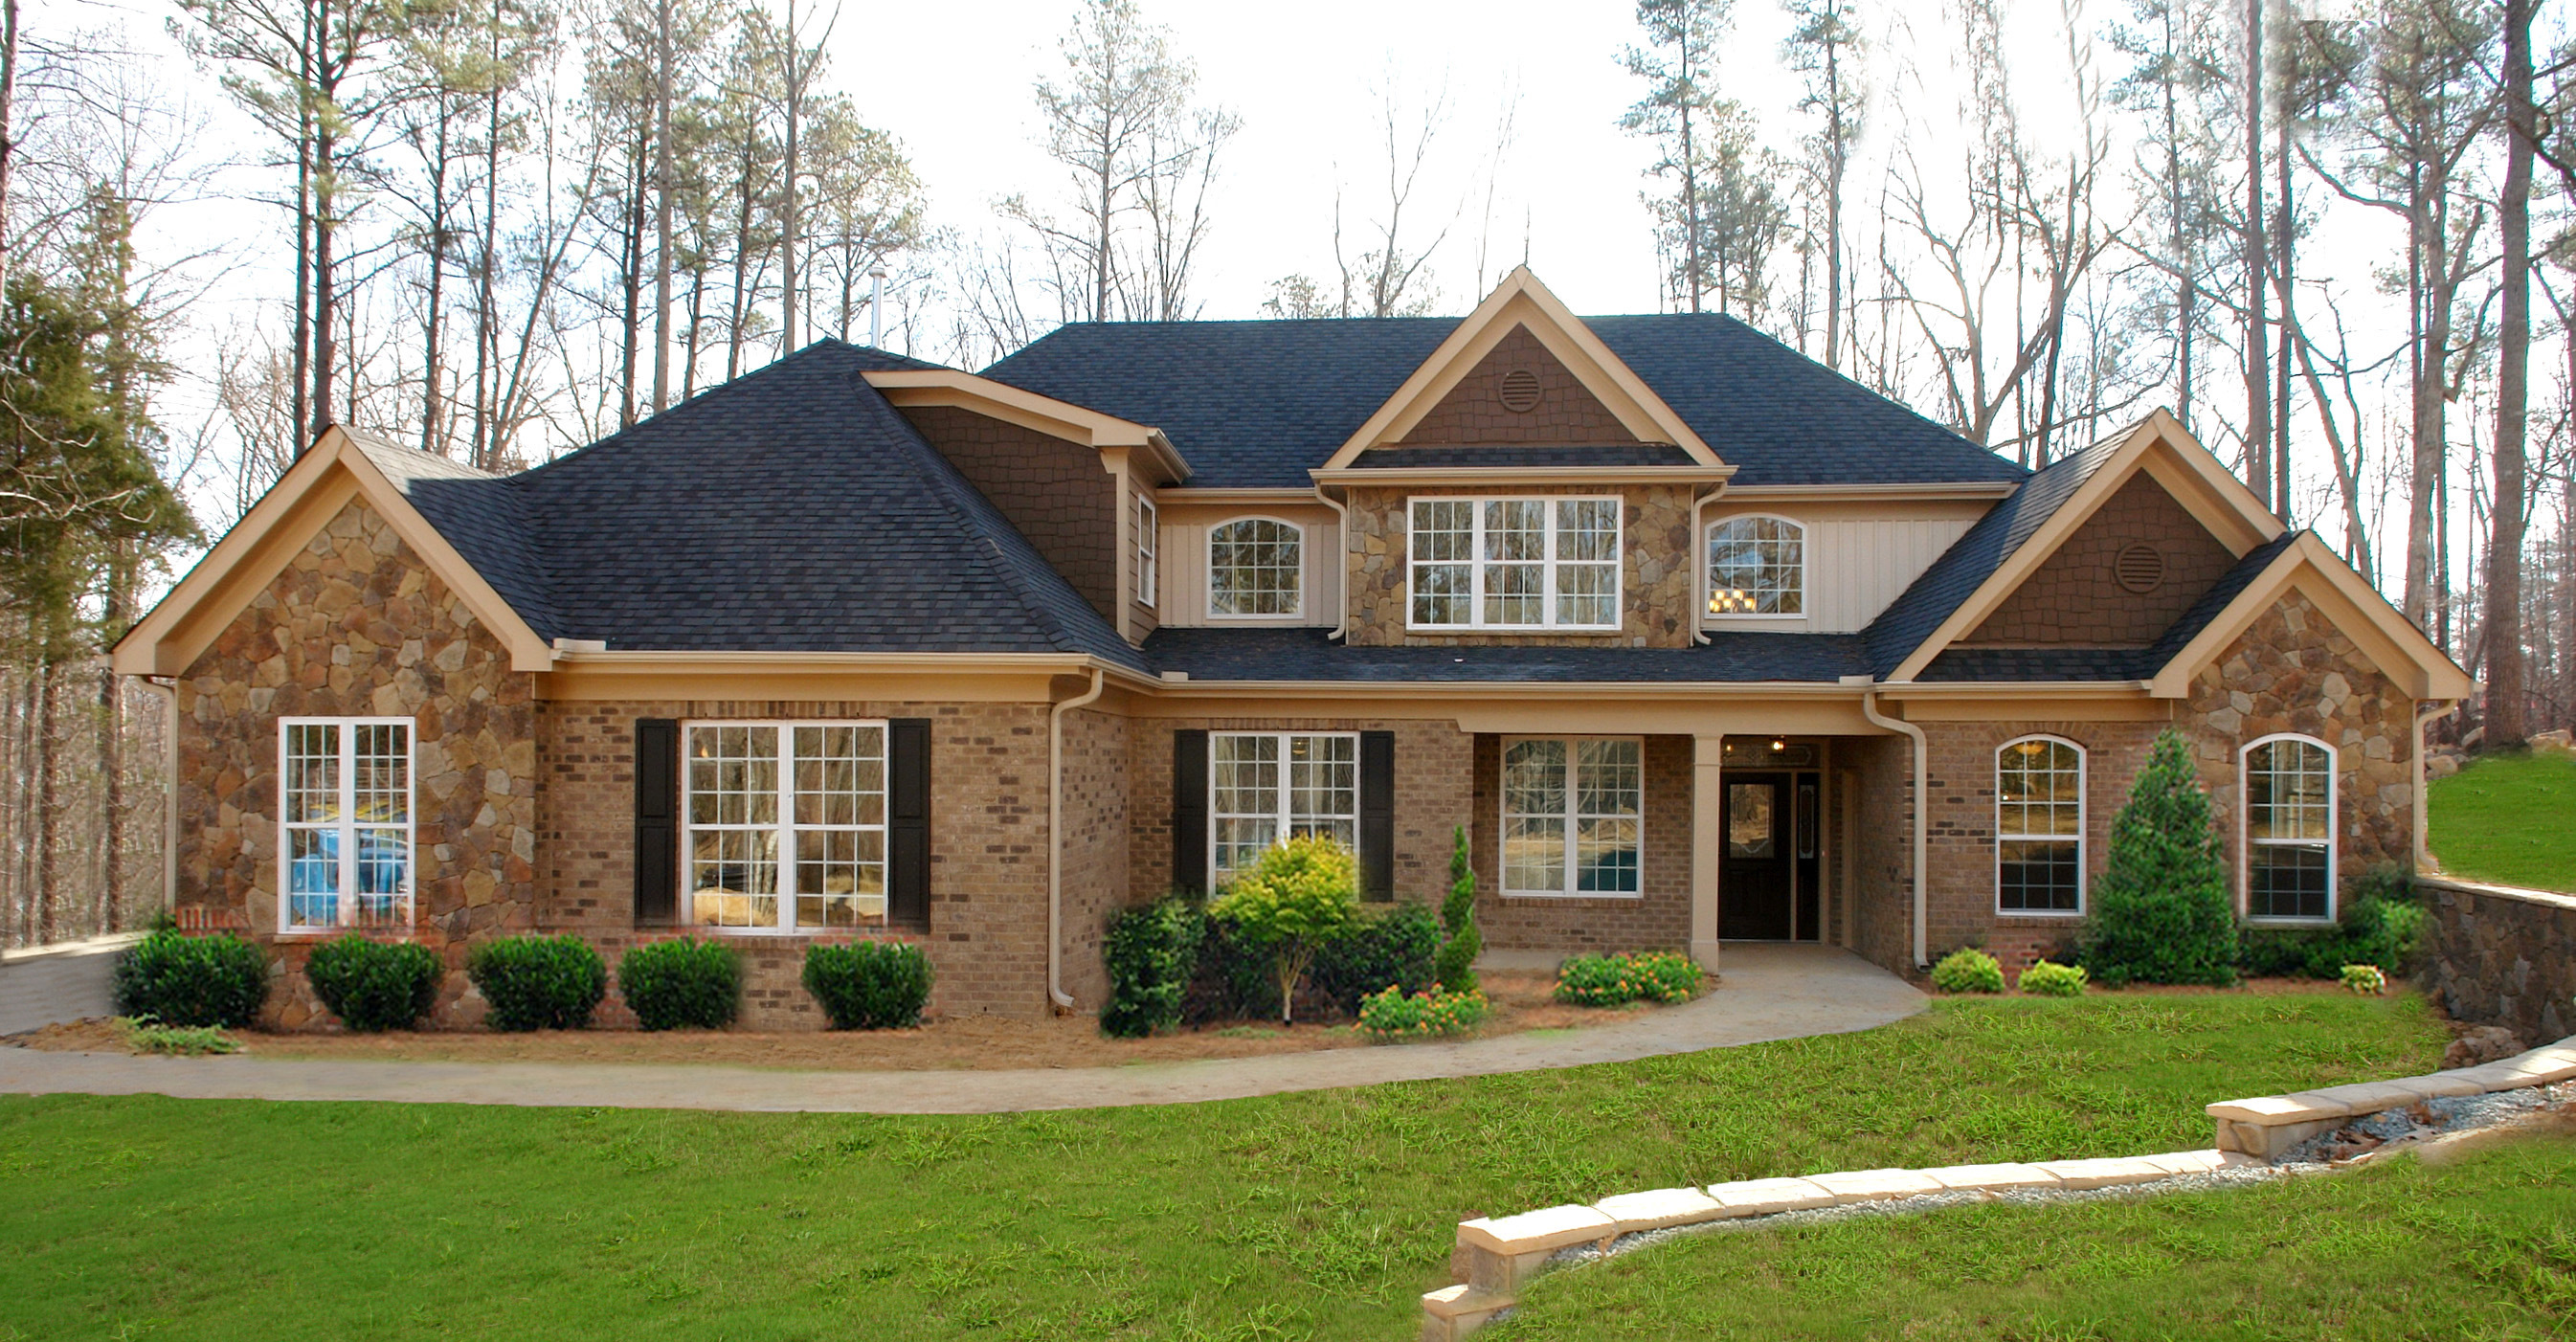 Brick home construction Company